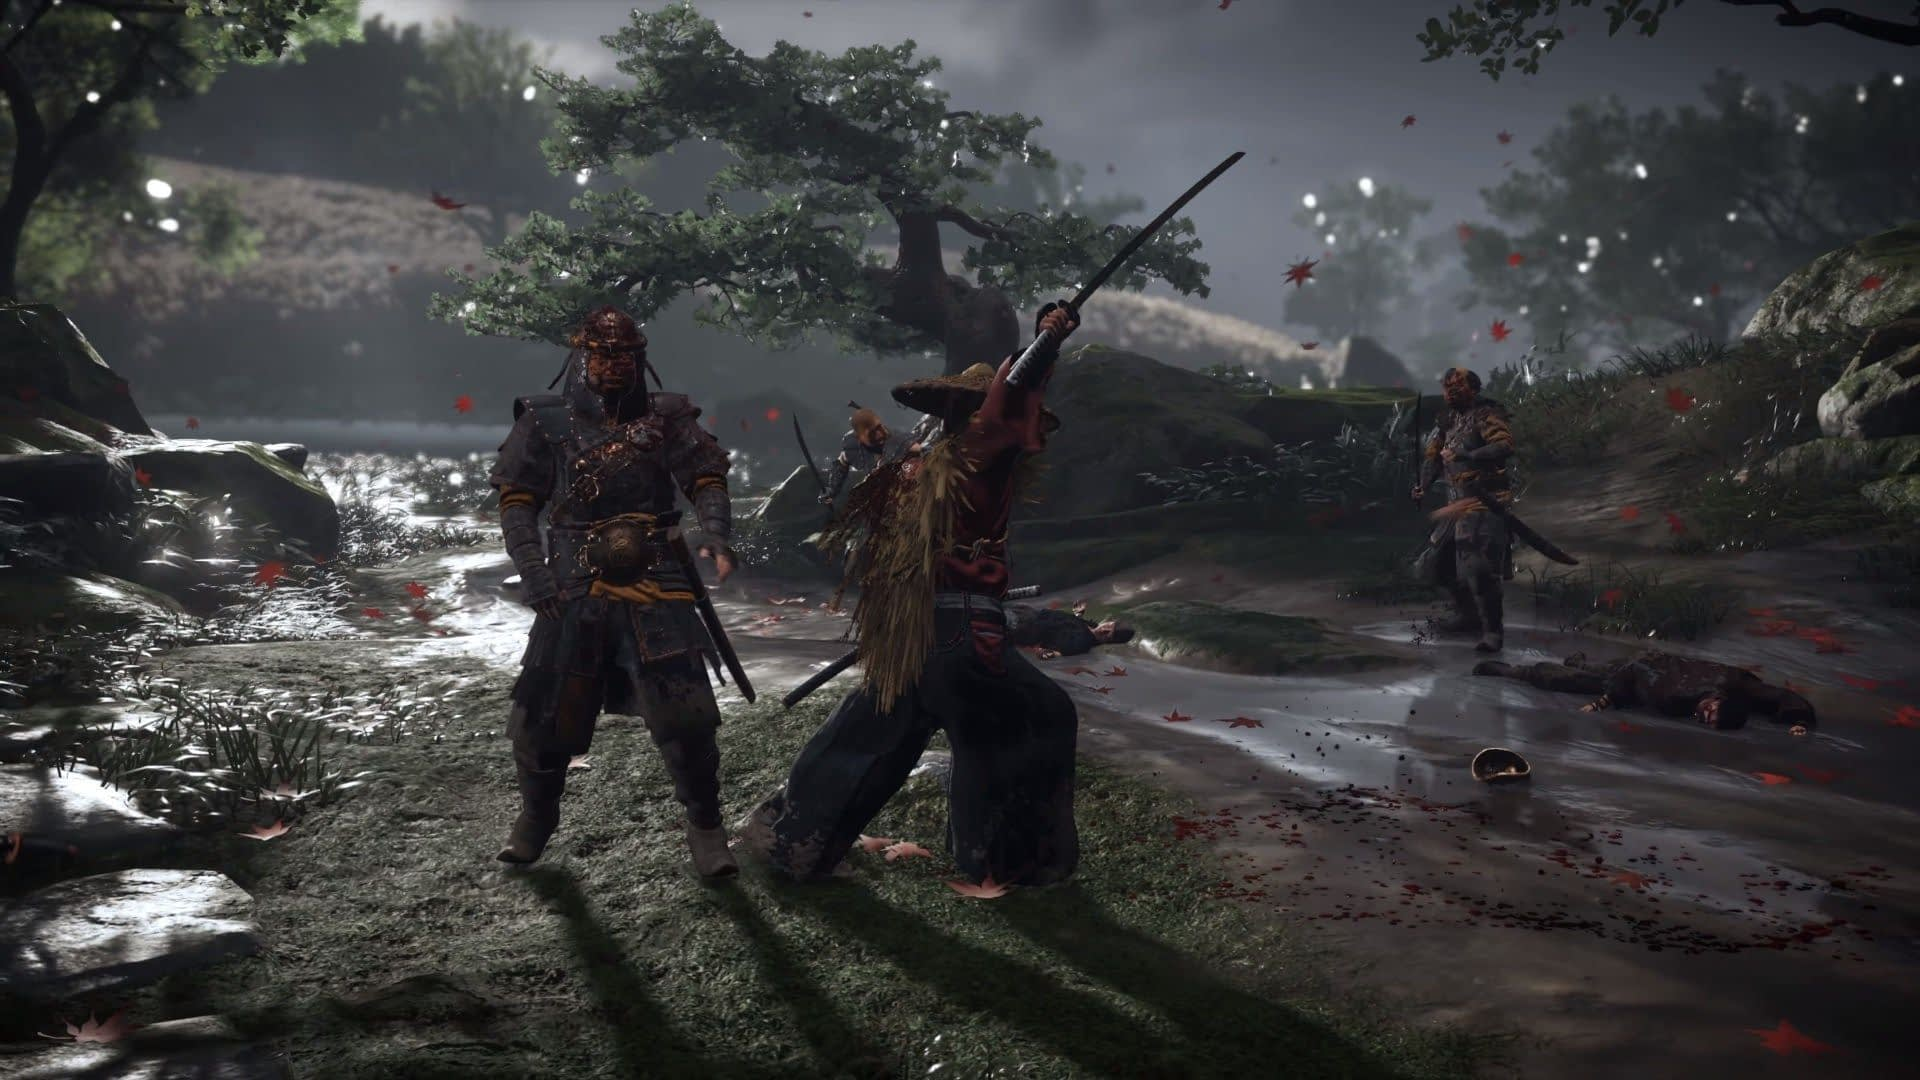 Games to play on ps5: Ghost of Tsushima